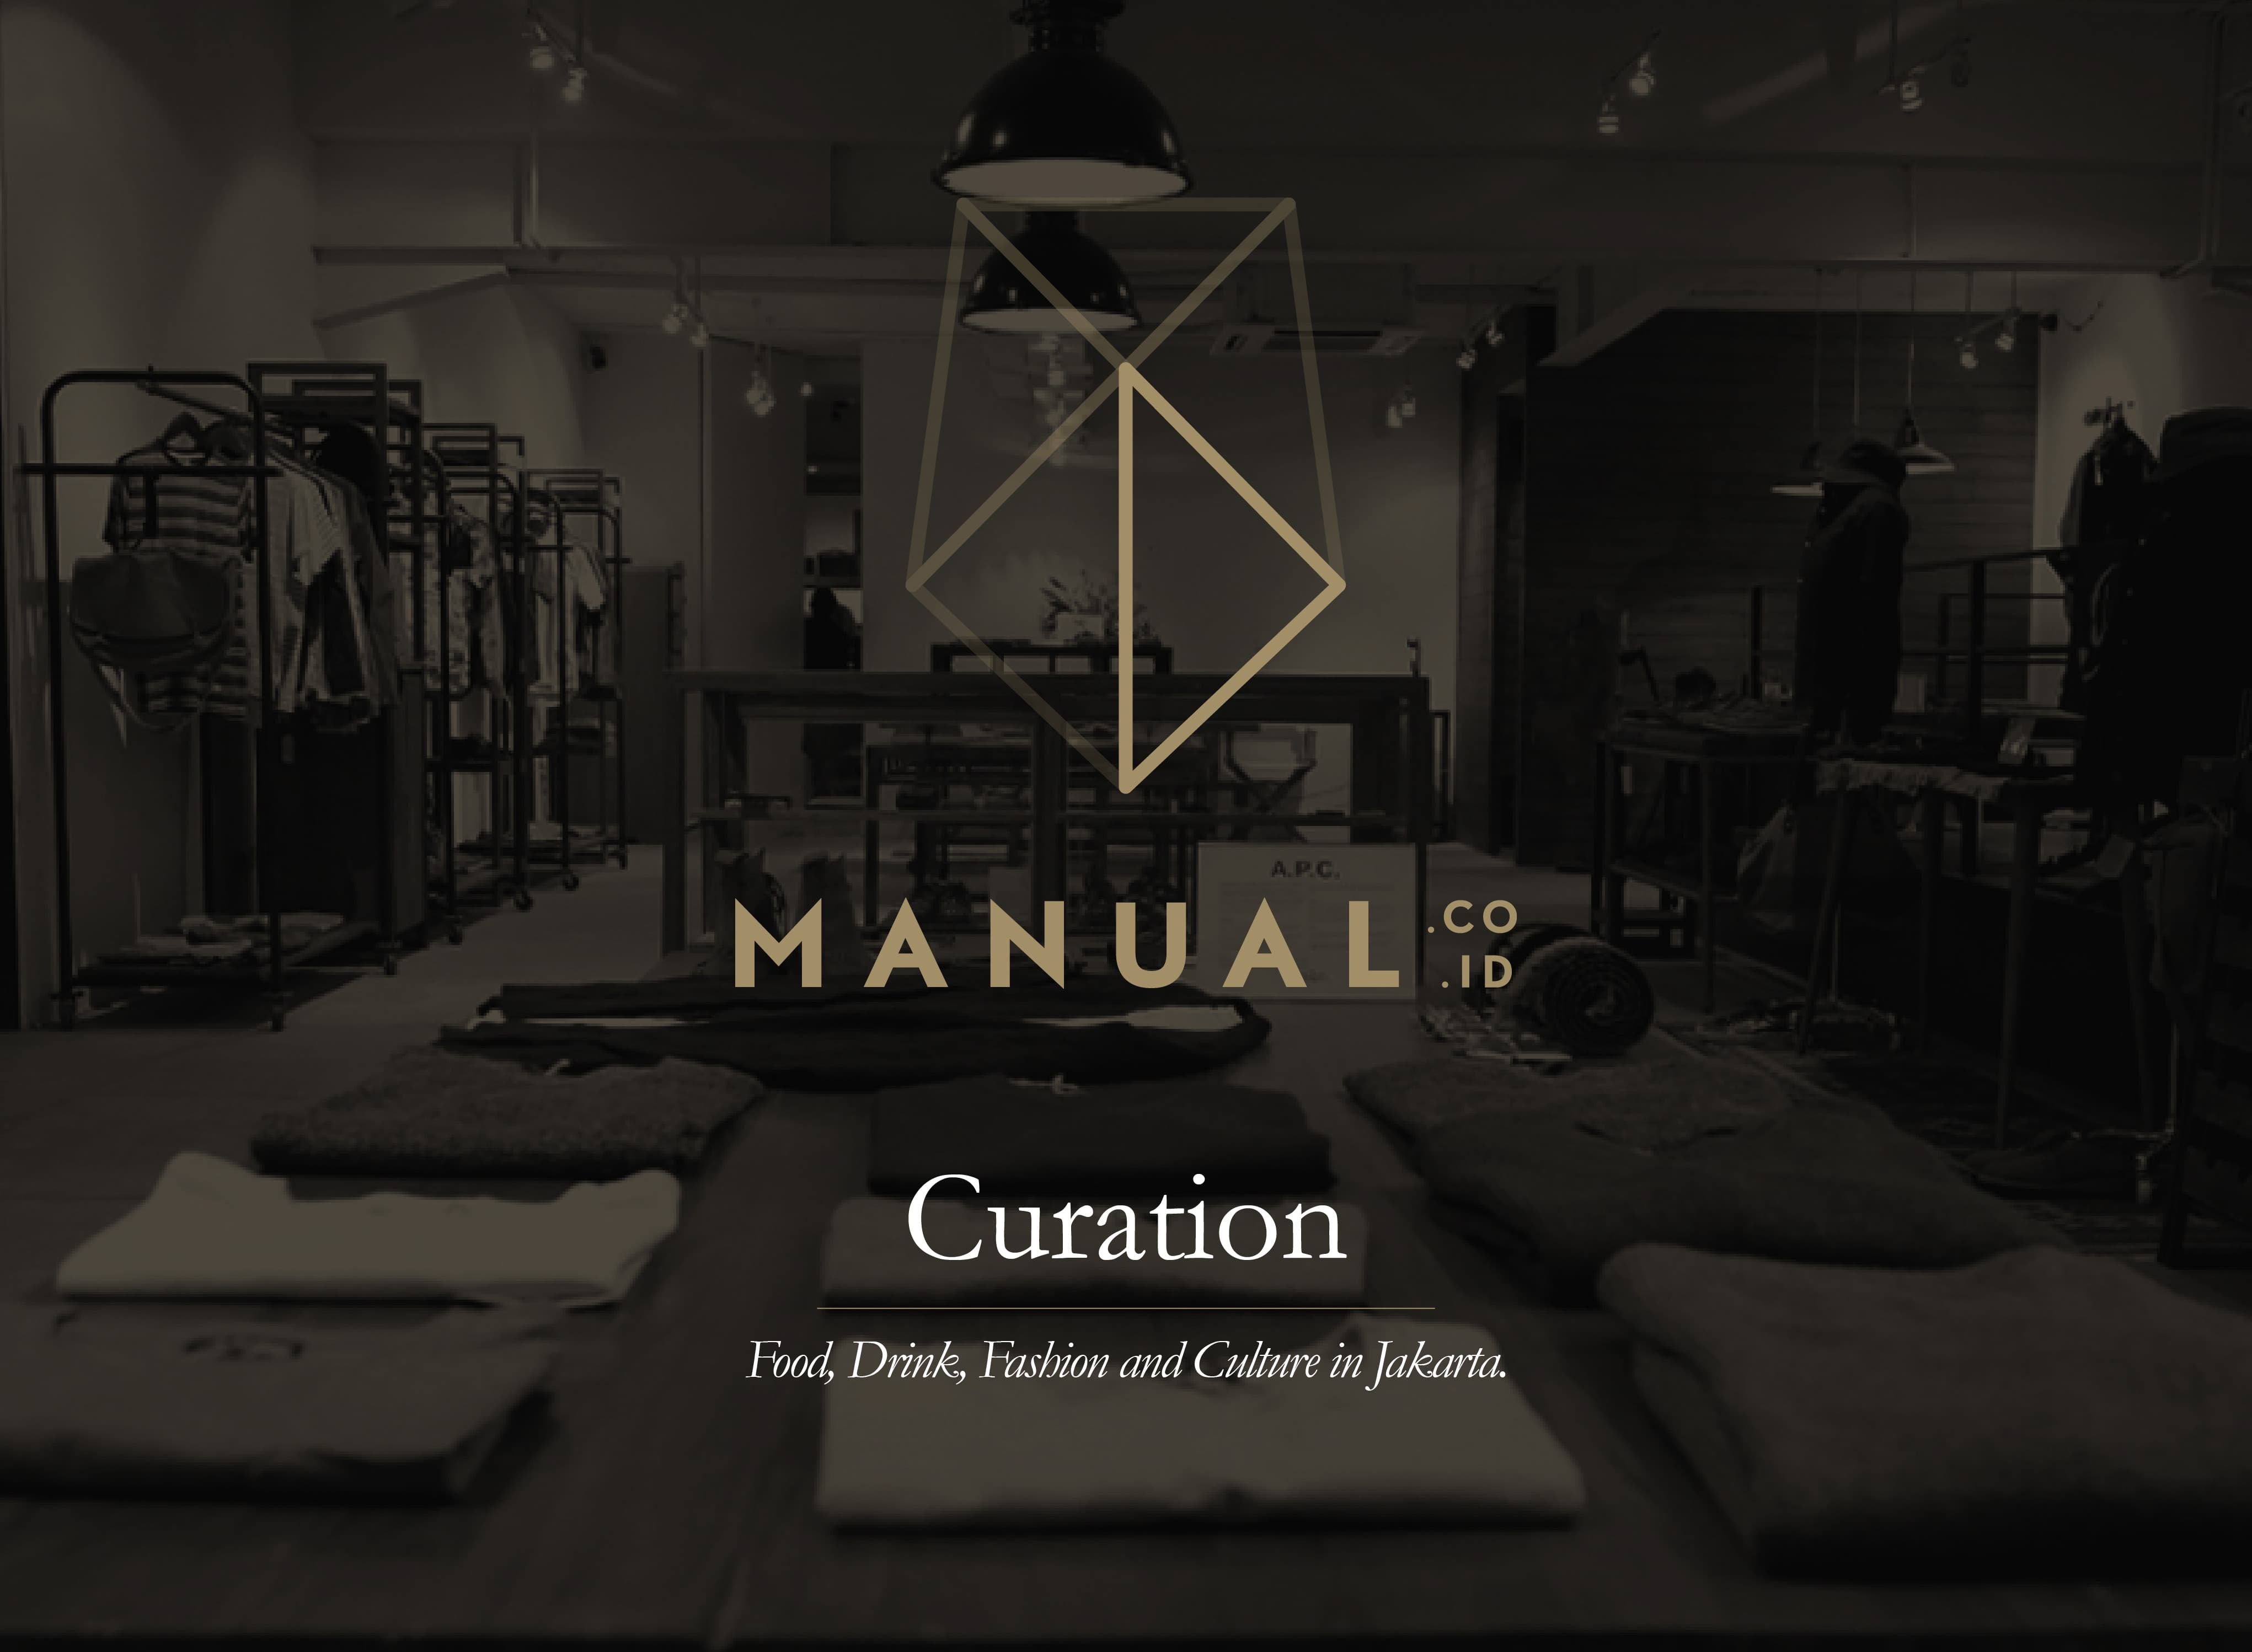 About Manual